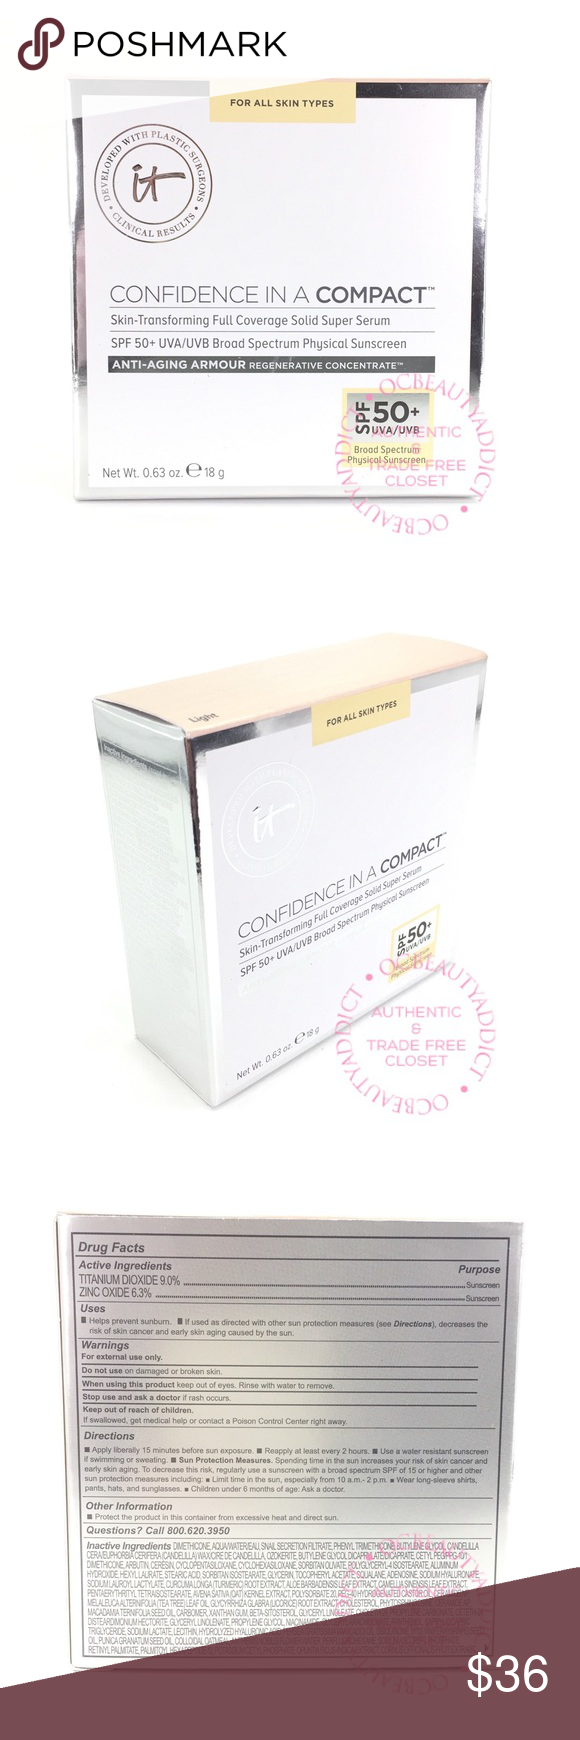 it Cosmetics Confidence іn a Compact - Light Confidence in..